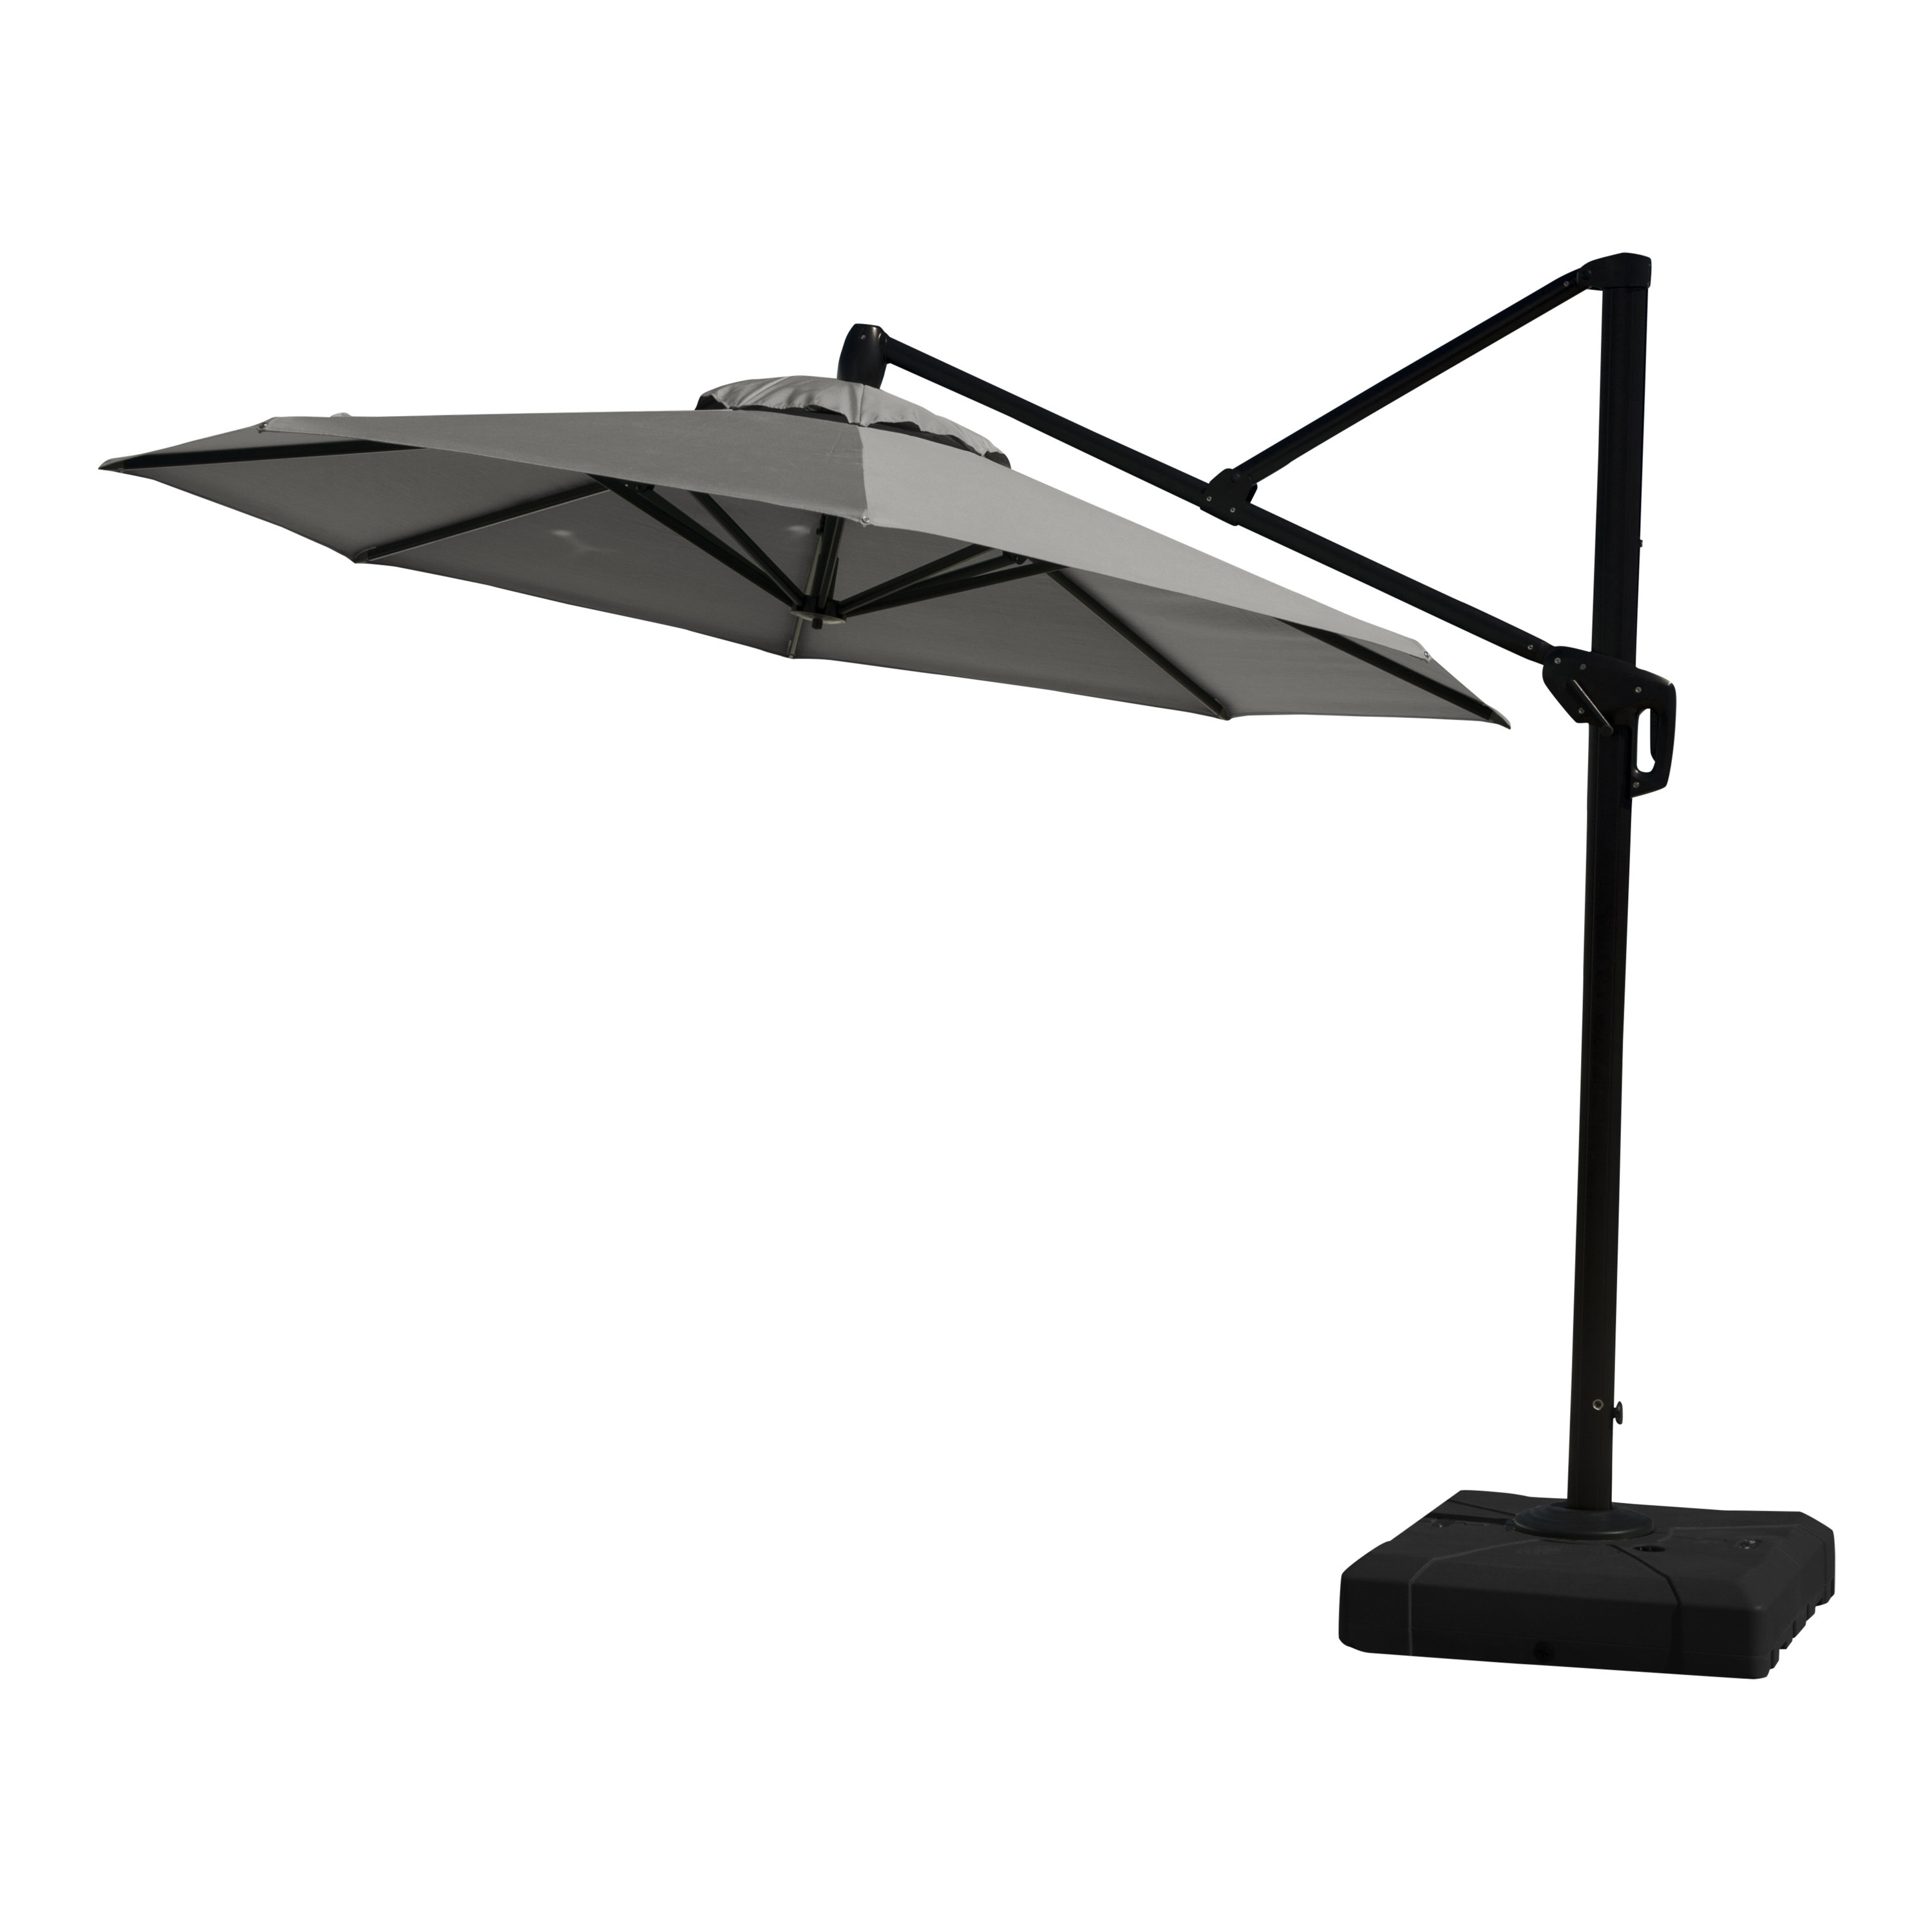 Ceylon 10' Cantilever Sunbrella Umbrella With Regard To Best And Newest Gribble 3Cantilever Umbrellas (View 7 of 20)